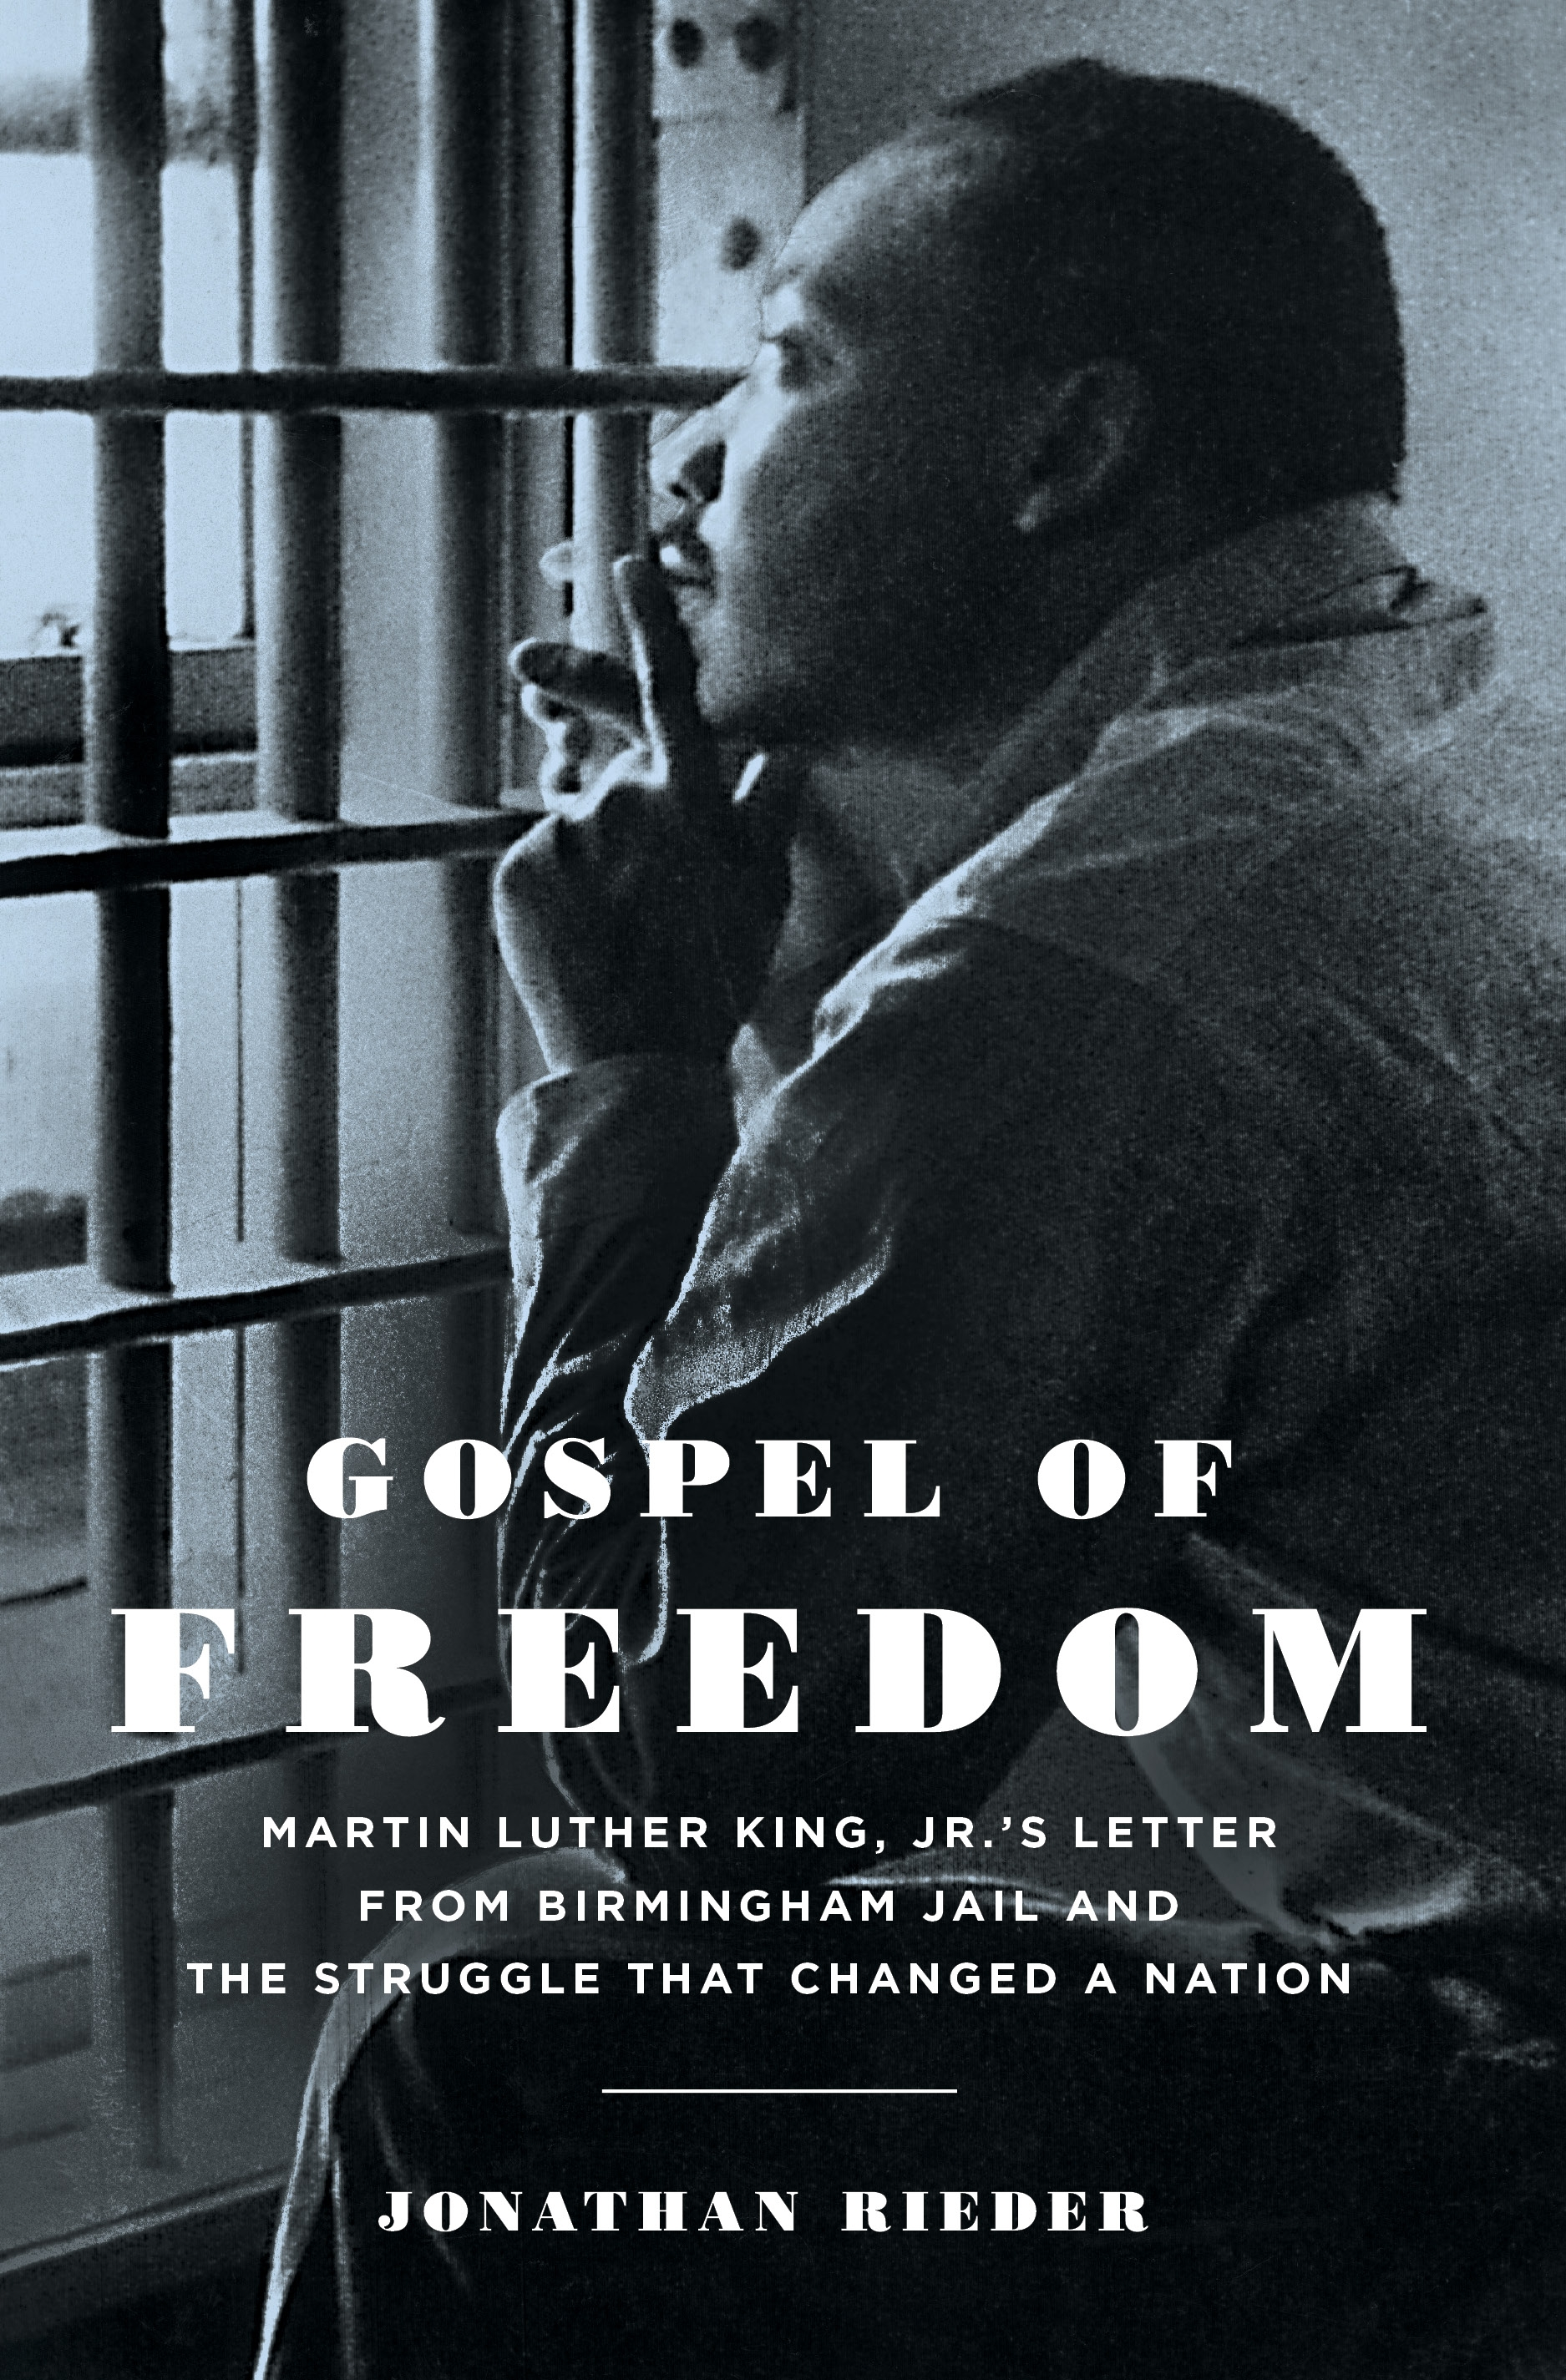 gospel of freedom martin luther king jrs letter from birmingham jail and the struggle that changed a nation